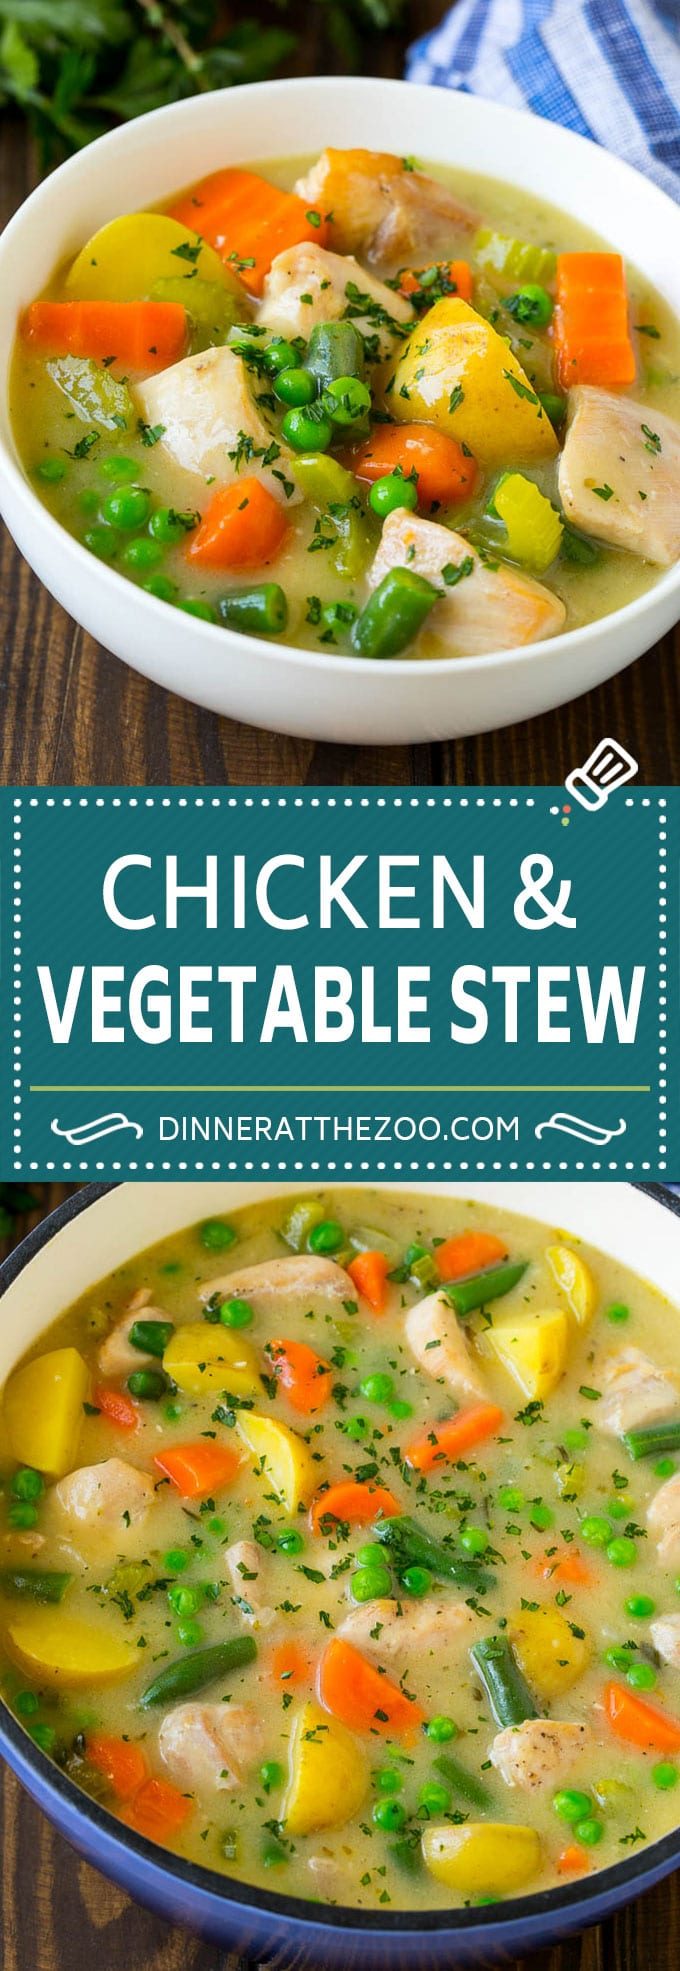 Chicken Stew Recipe | Chicken and Vegetable Soup #stew #soup #chicken #potatoes #comfortfood #dinner #dinneratthezoo